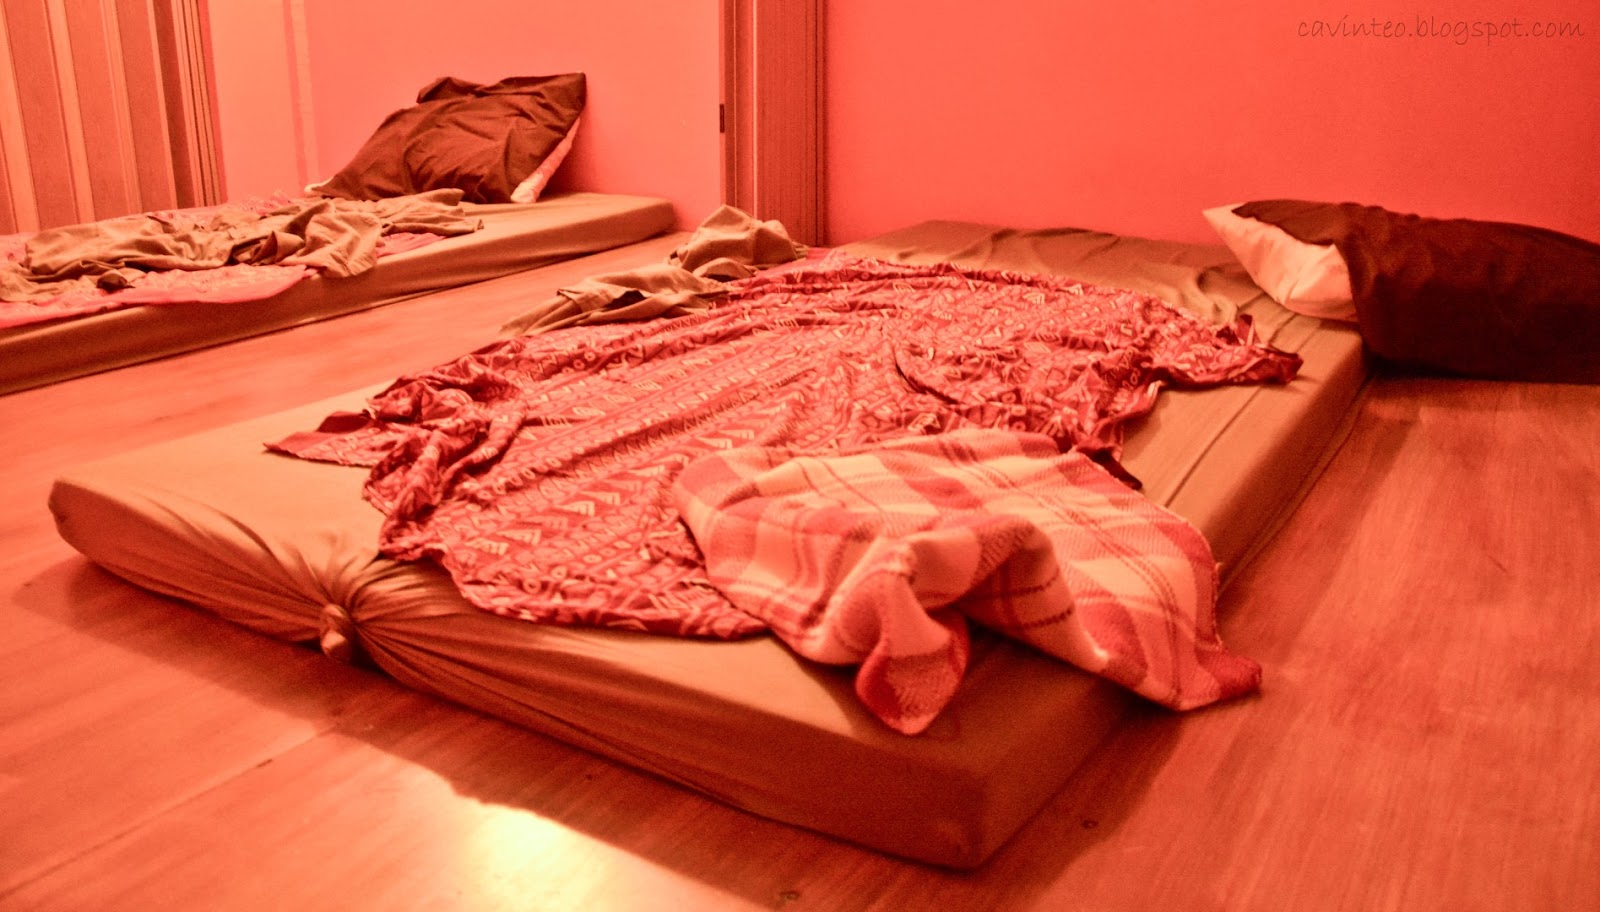 entree kibbles bangkok 2016 6 days 5 nights itinerary summary nothing kinky lah it s just an hour of clean and superbly comfortable thai massage at this parlour near our hotel